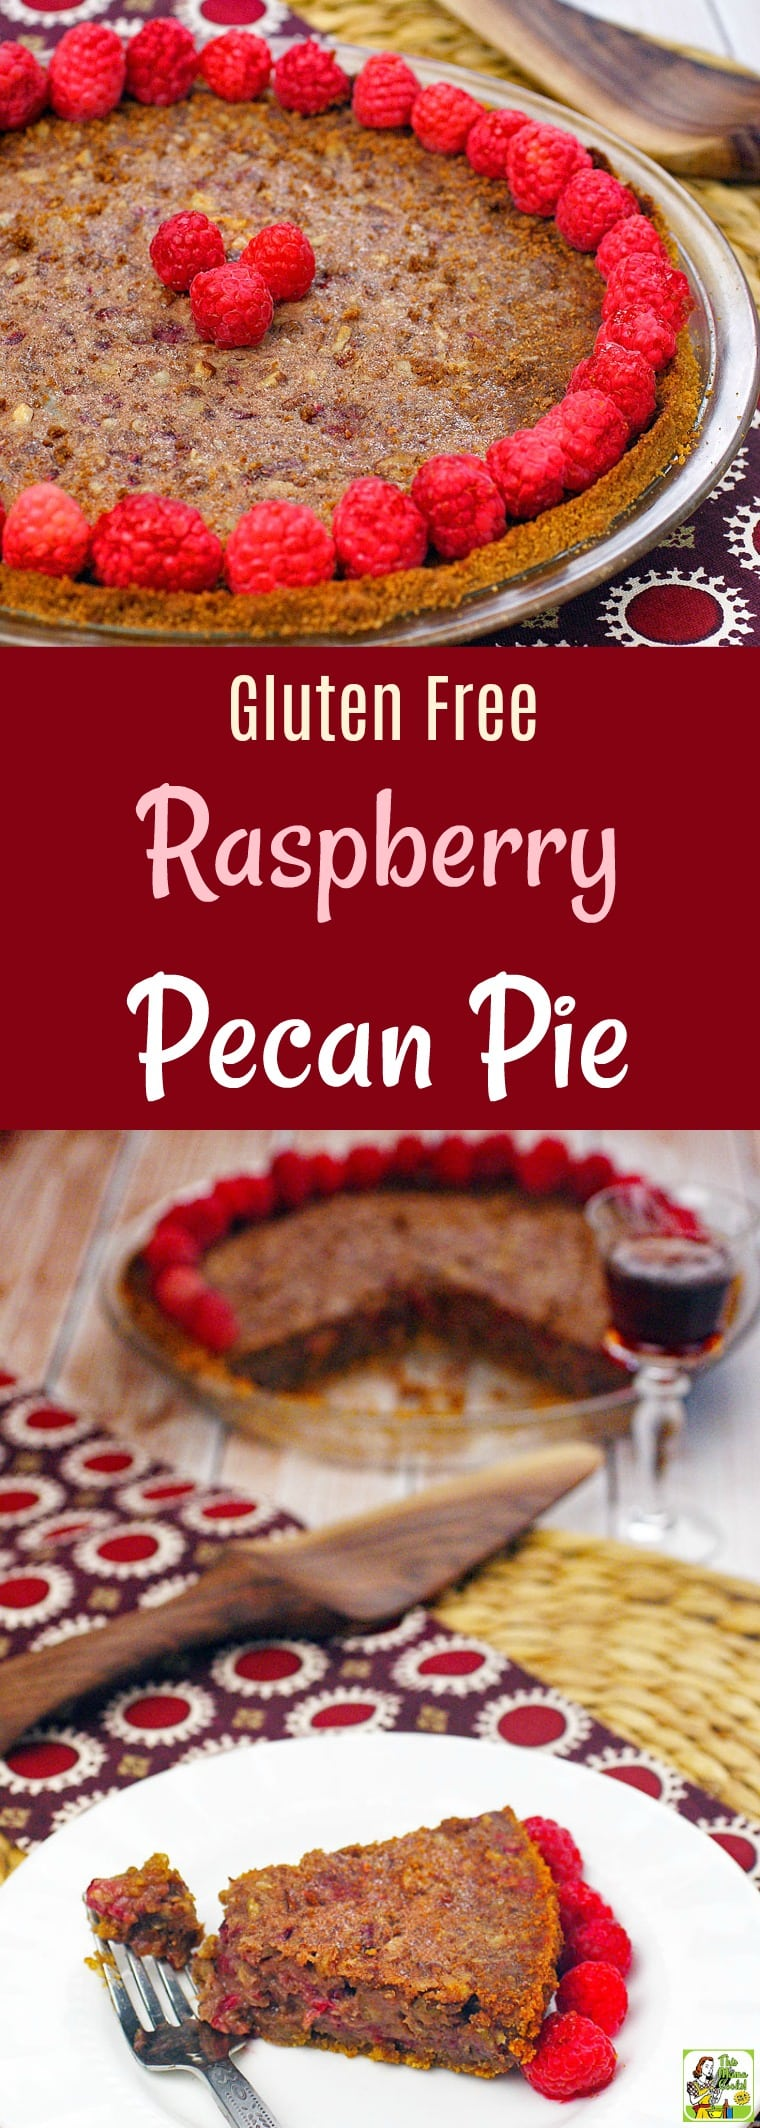 Looking for a unique recipe for pecan pie for Thanksgiving? Try this easy pecan pie recipe with raspberries! This Gluten Free Raspberry Pecan Pie can be made a day in advance. Comes with directions for making a gluten-free pie crust from gluten-free cookies. #pie #pi #Thanksgiving #pecan #pecans #raspberries #dessert #glutenfreedessert #glutenfreecrust #baking #piecrust #easypierecipe #easypiecrust #recipe #easy #recipeoftheday #healthyrecipes #glutenfree #easyrecipes